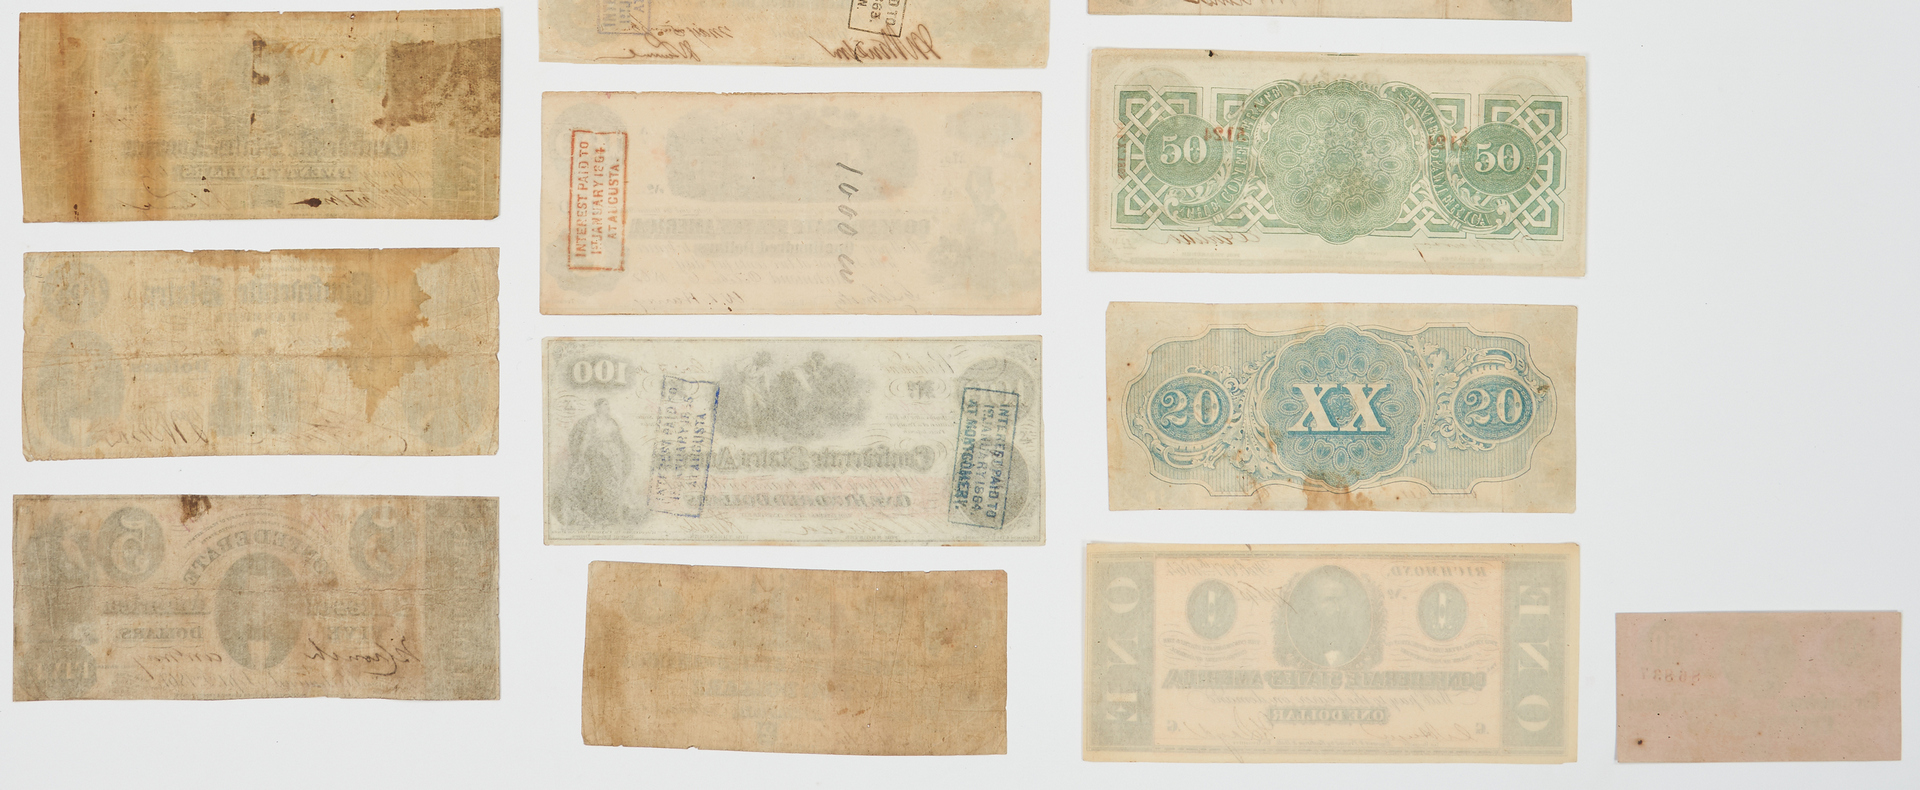 Lot 727: 20 Pcs. CSA Currency, incl. 8 dated 1861